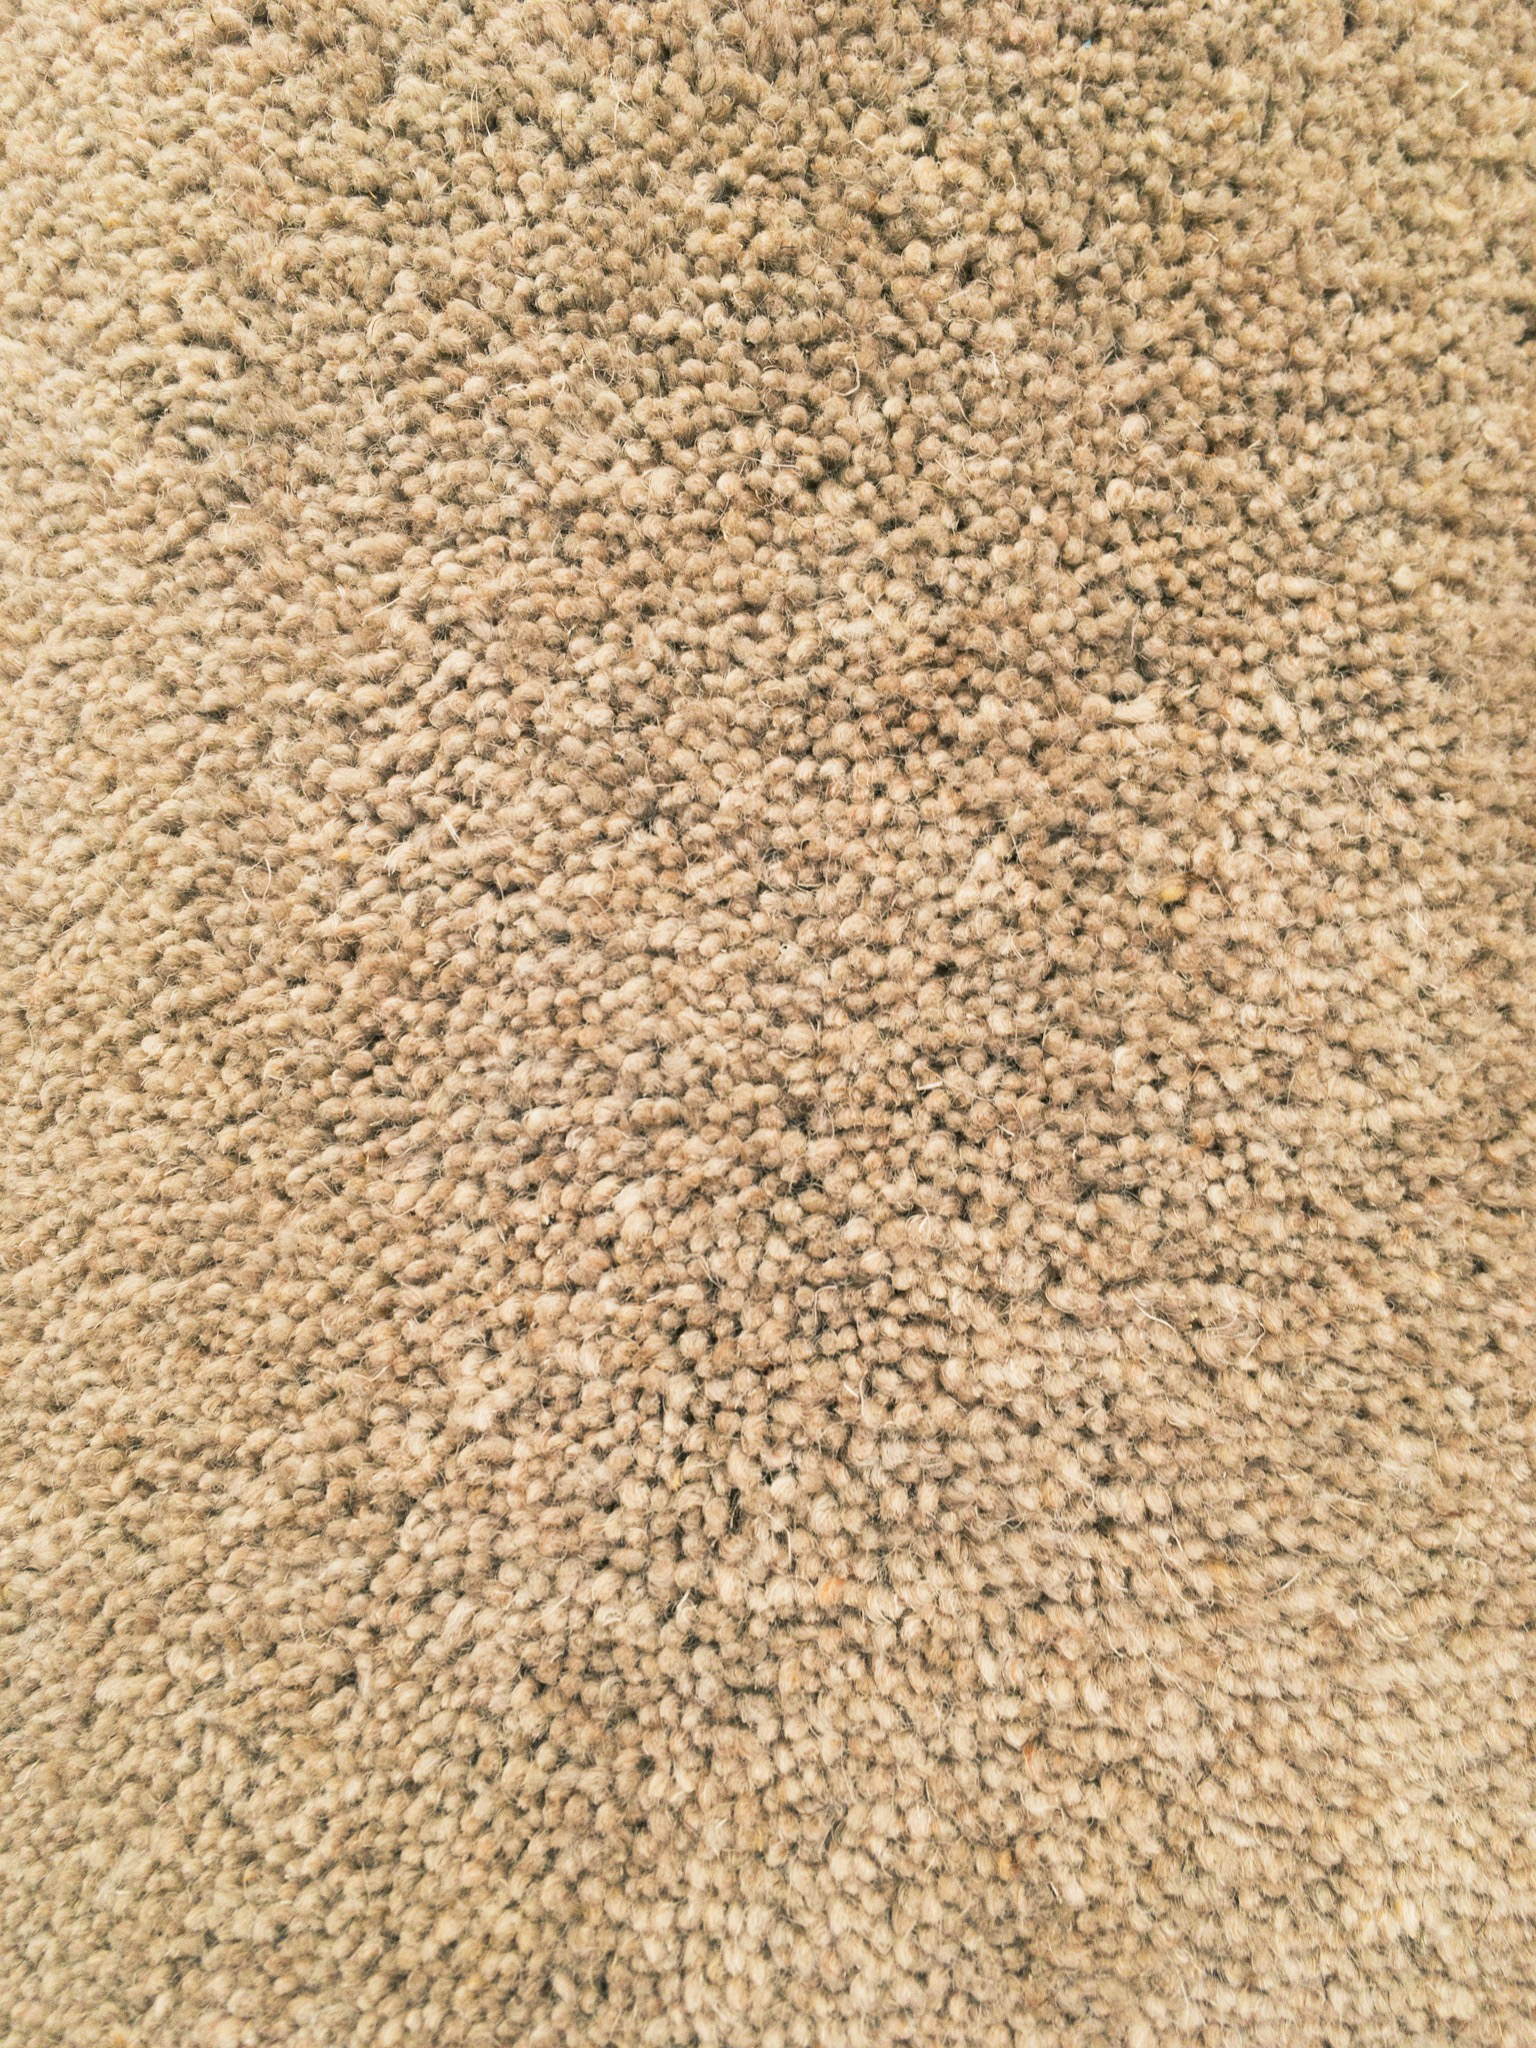 Arran 70oz - Colour: Beige80/20Size: 5.00 x 4.00MPrice: £519.80